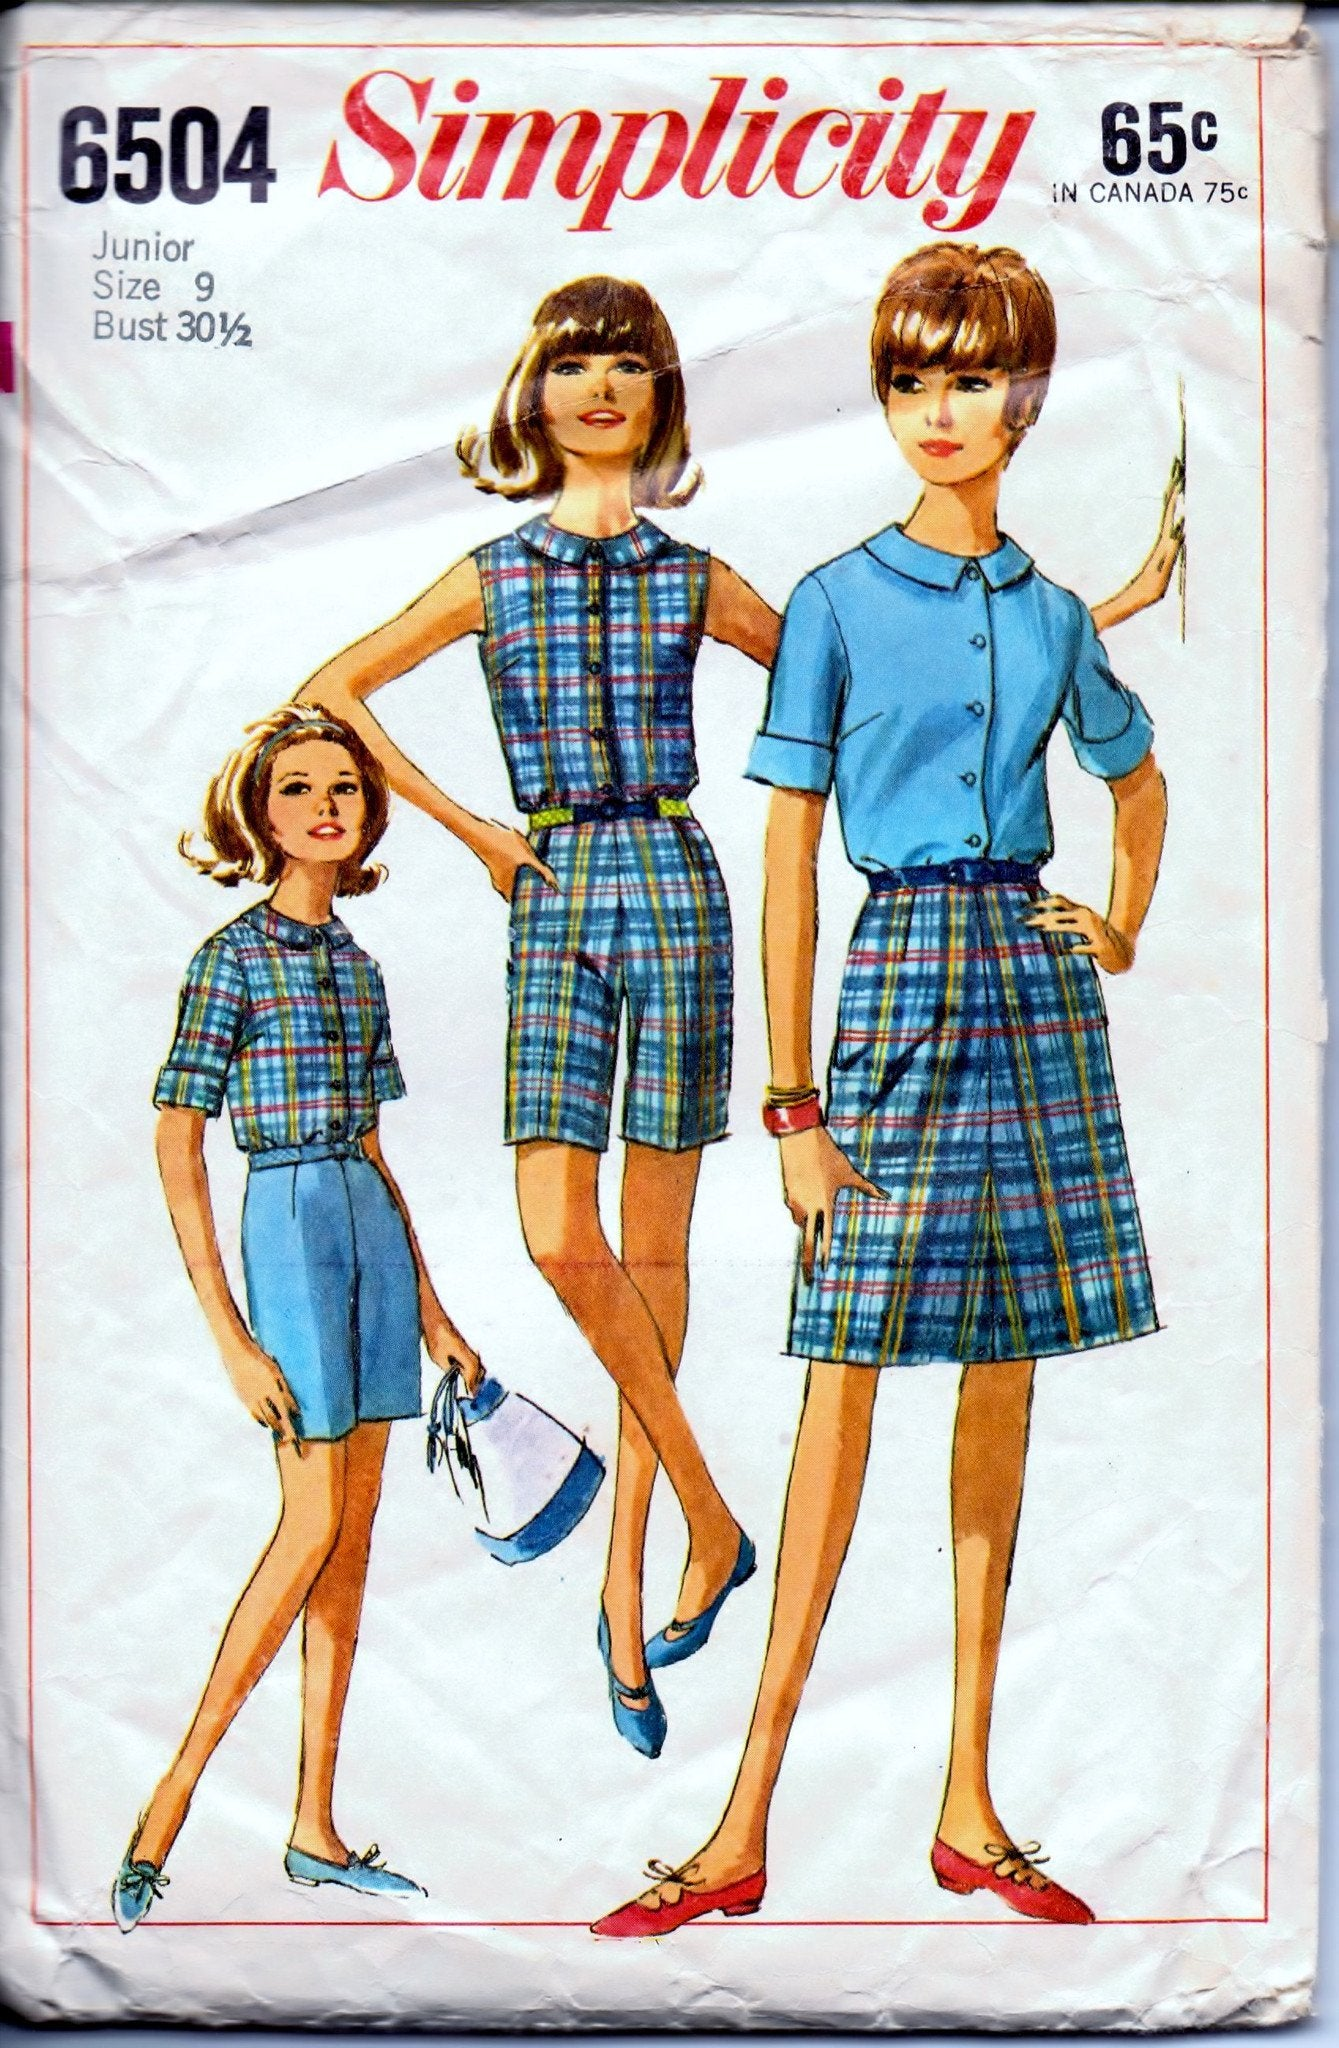 Simplicity 6504 Junior Blouse Skirt Bermuda Shorts Vintage 1960's Sewing Pattern - VintageStitching - Vintage Sewing Patterns